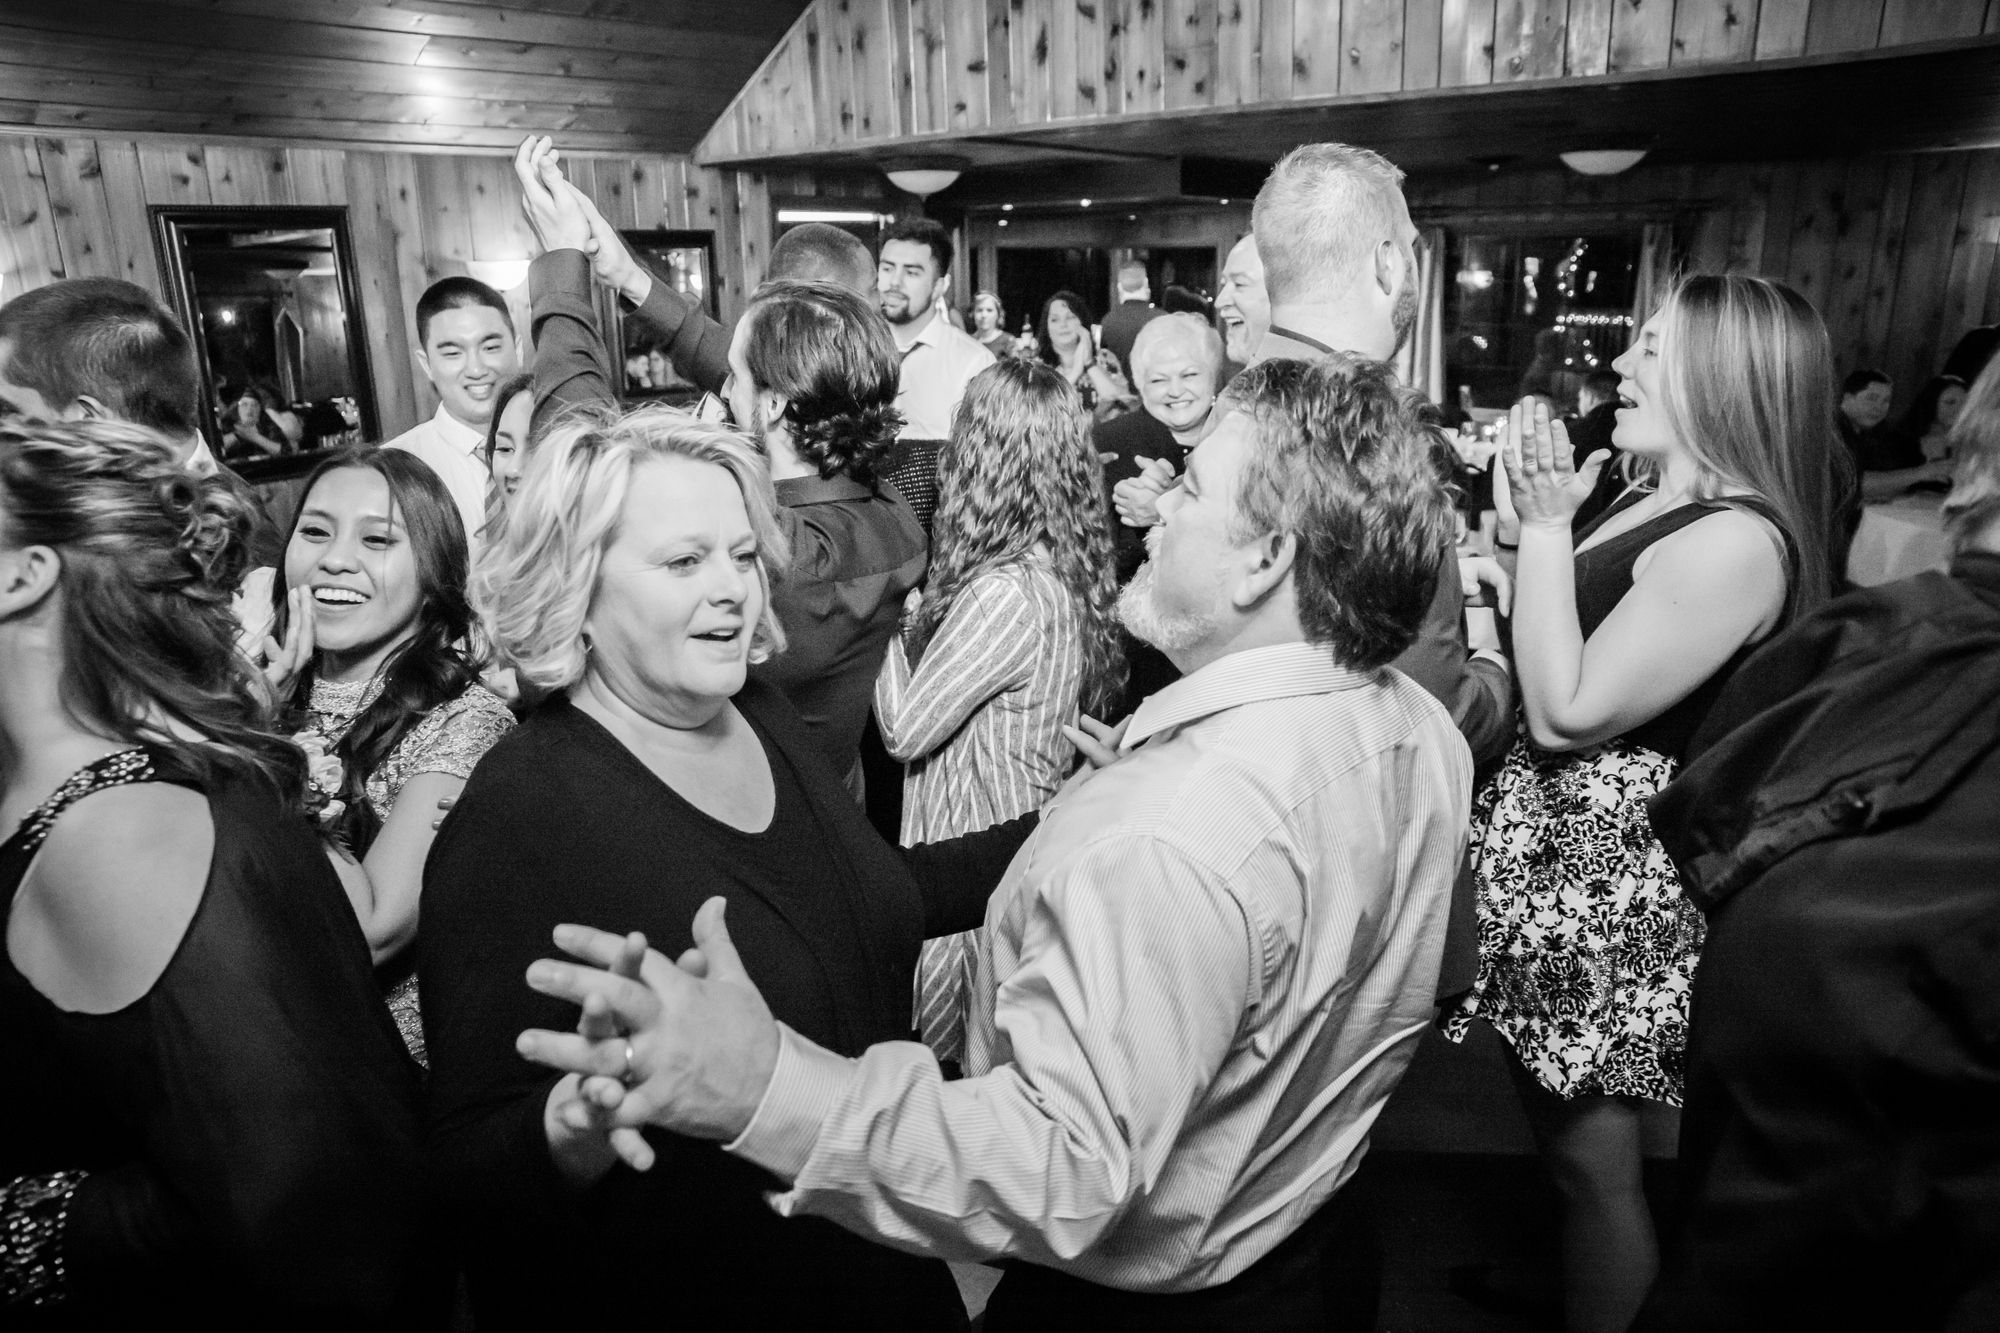 There is no better sign of a good party, than a packed dance floor.....💃💃💃  Photographer: @StephanieWilsonPhotography Venue: Portico & Main Indoor Venue @CommelliniEstate Florist: @libertyparkflorist DJ: @DjGellis  Cake: @SweetFrostings Wedding Coordinator: @Commelliniestate & @savvylee9  #holidaypartyvenue #christmaspartyvenue #christmascocktails #cocktails #happyhour #wine #dreamingofawhitechristmas #whitechristmas #christmastree #spokanewedding #spokaneweddinginspo